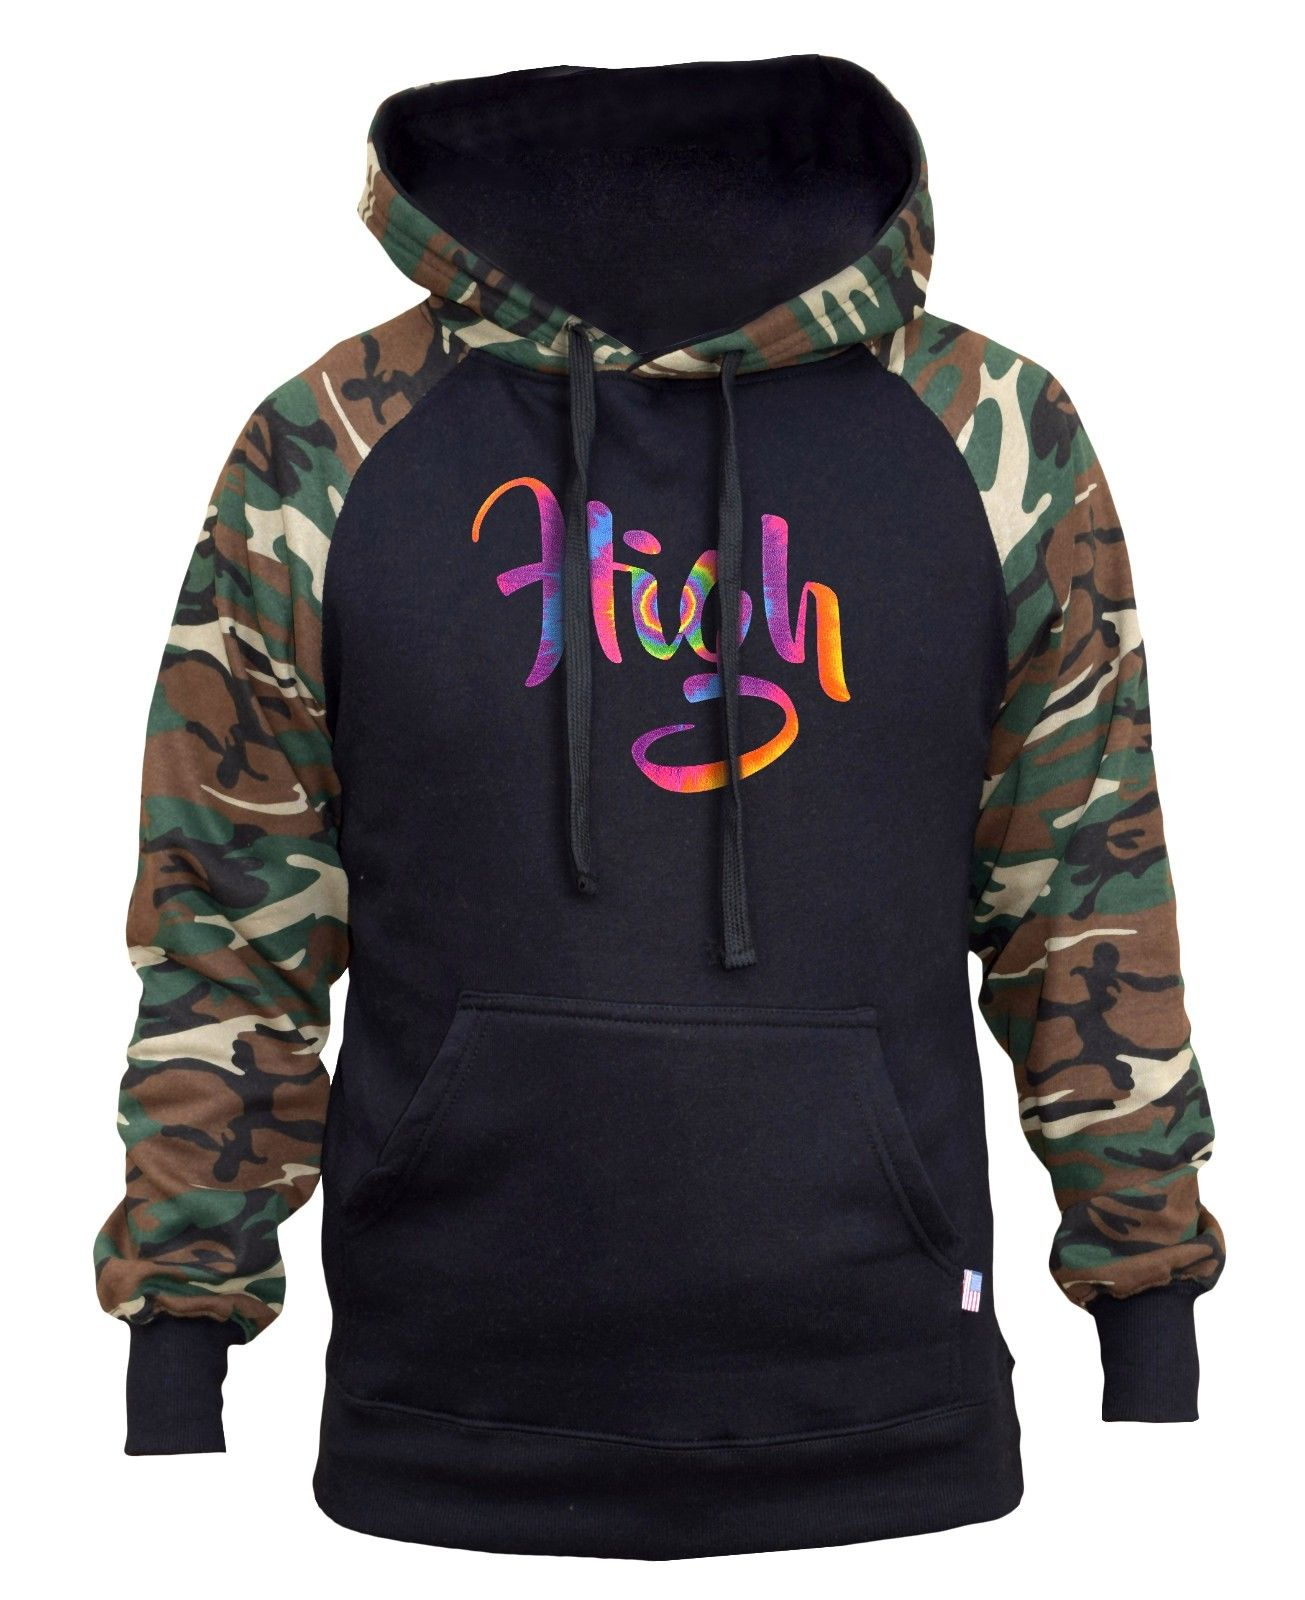 New Men's Neon Tie Dye High Camo/Black Raglan Hoodie Galaxy Weed Blunt Marijuana 1